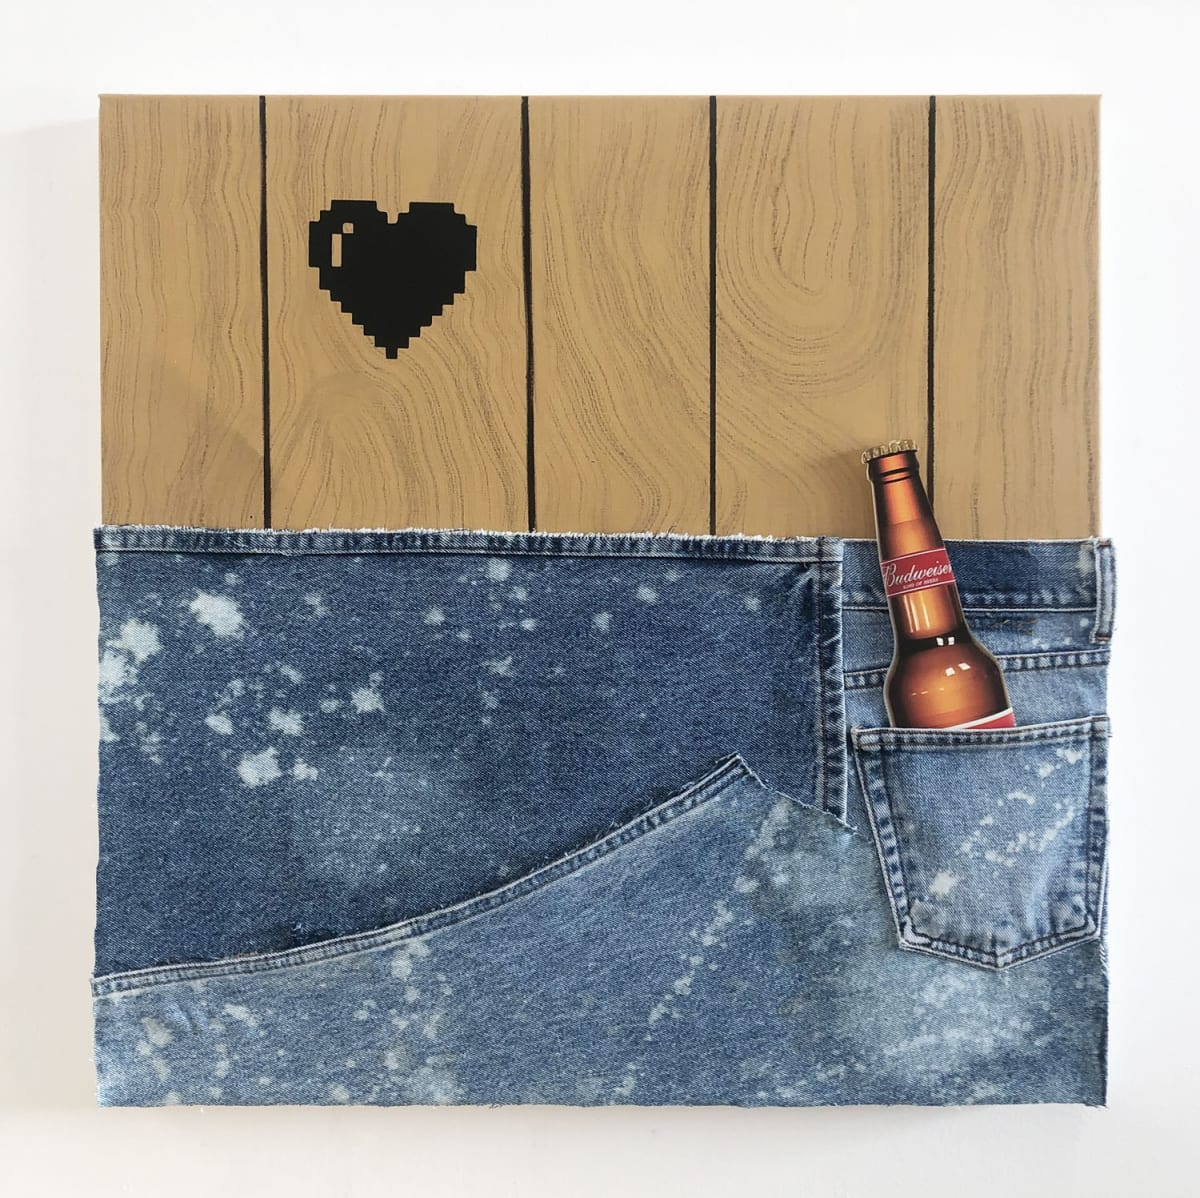 Wendy White. Jeans Panel (Budweiser), 2019